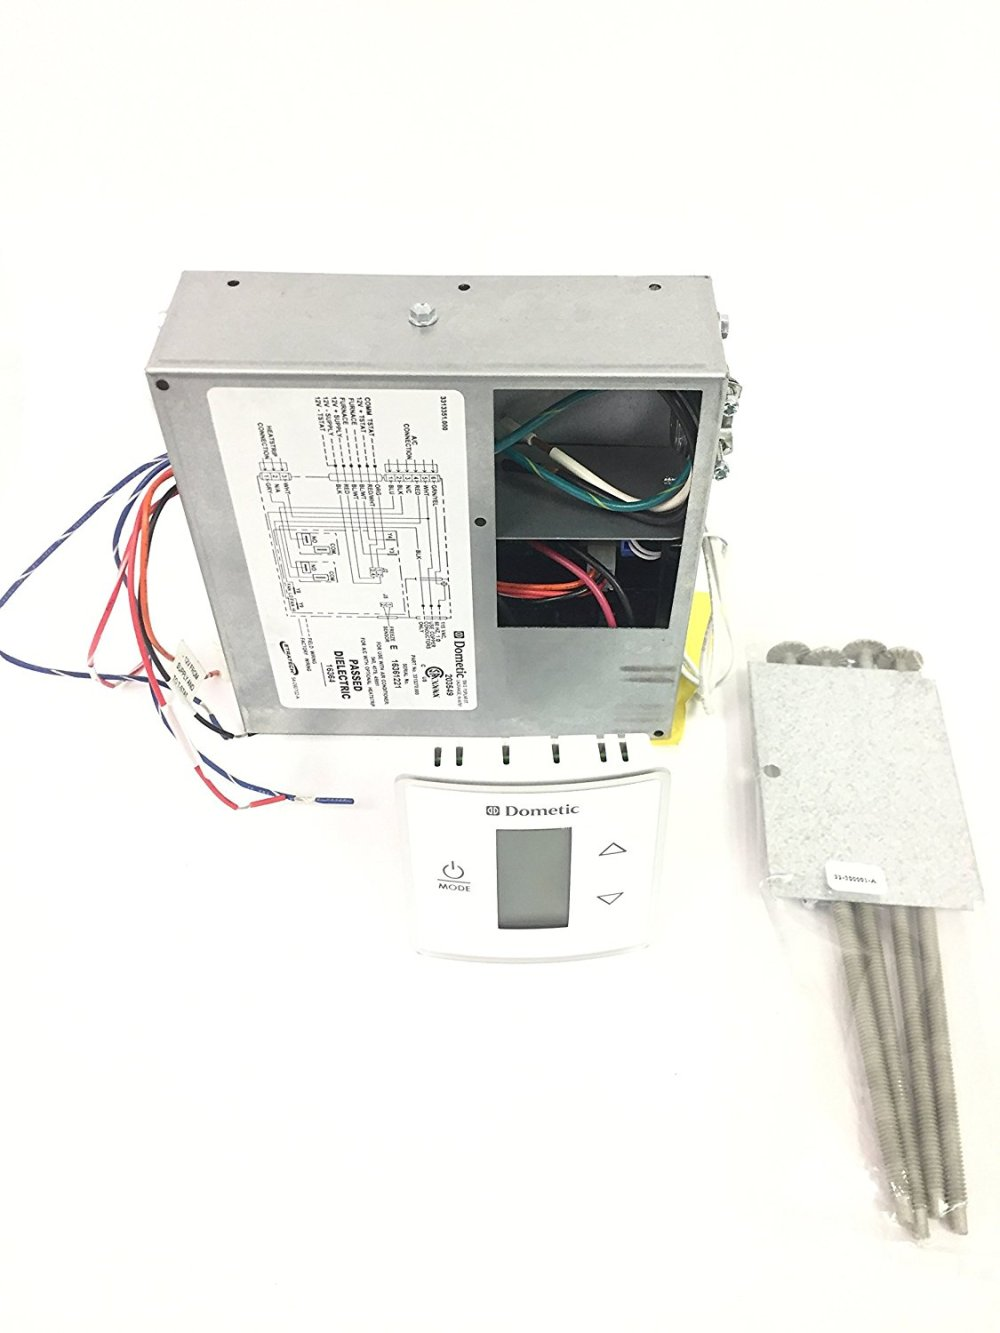 medium resolution of dometic 3316232 000 pw capacitive lcd touch thermostat kit replace 3313189 000 walmart com